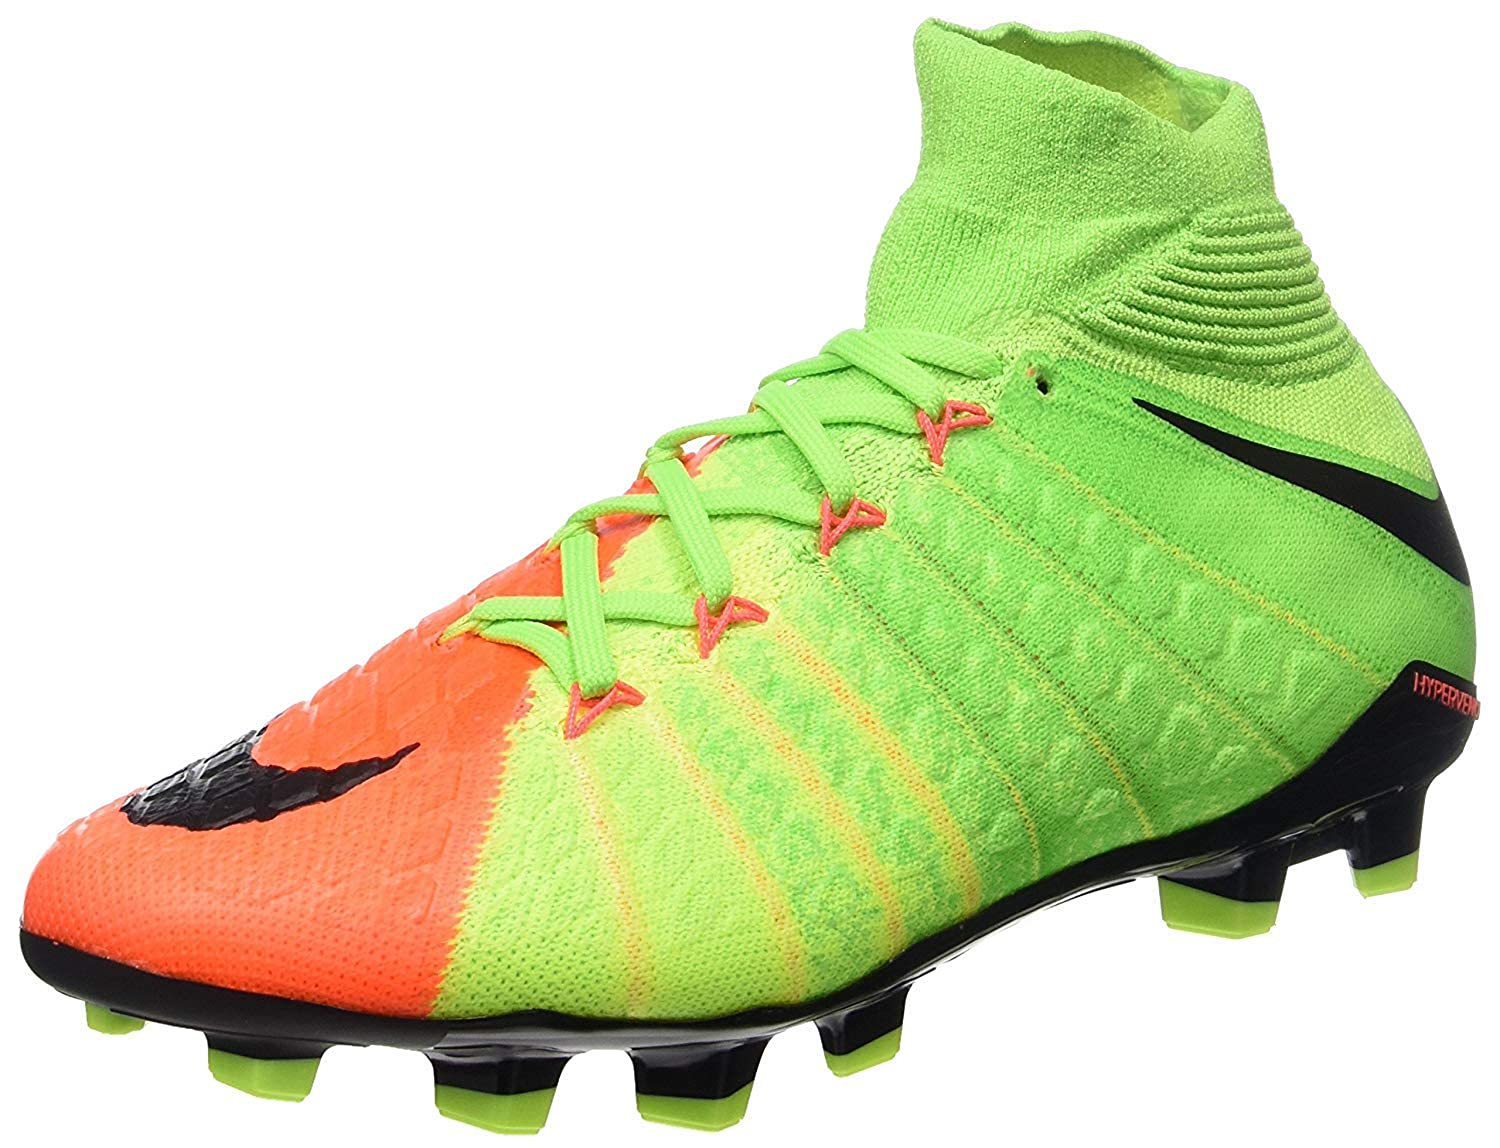 low priced 687a9 1d1ee Nike Kids Hypervenom Phantom III Dynamic Fit FG Electric Green/Black/Hyper  Orange Soccer Shoes - 5Y